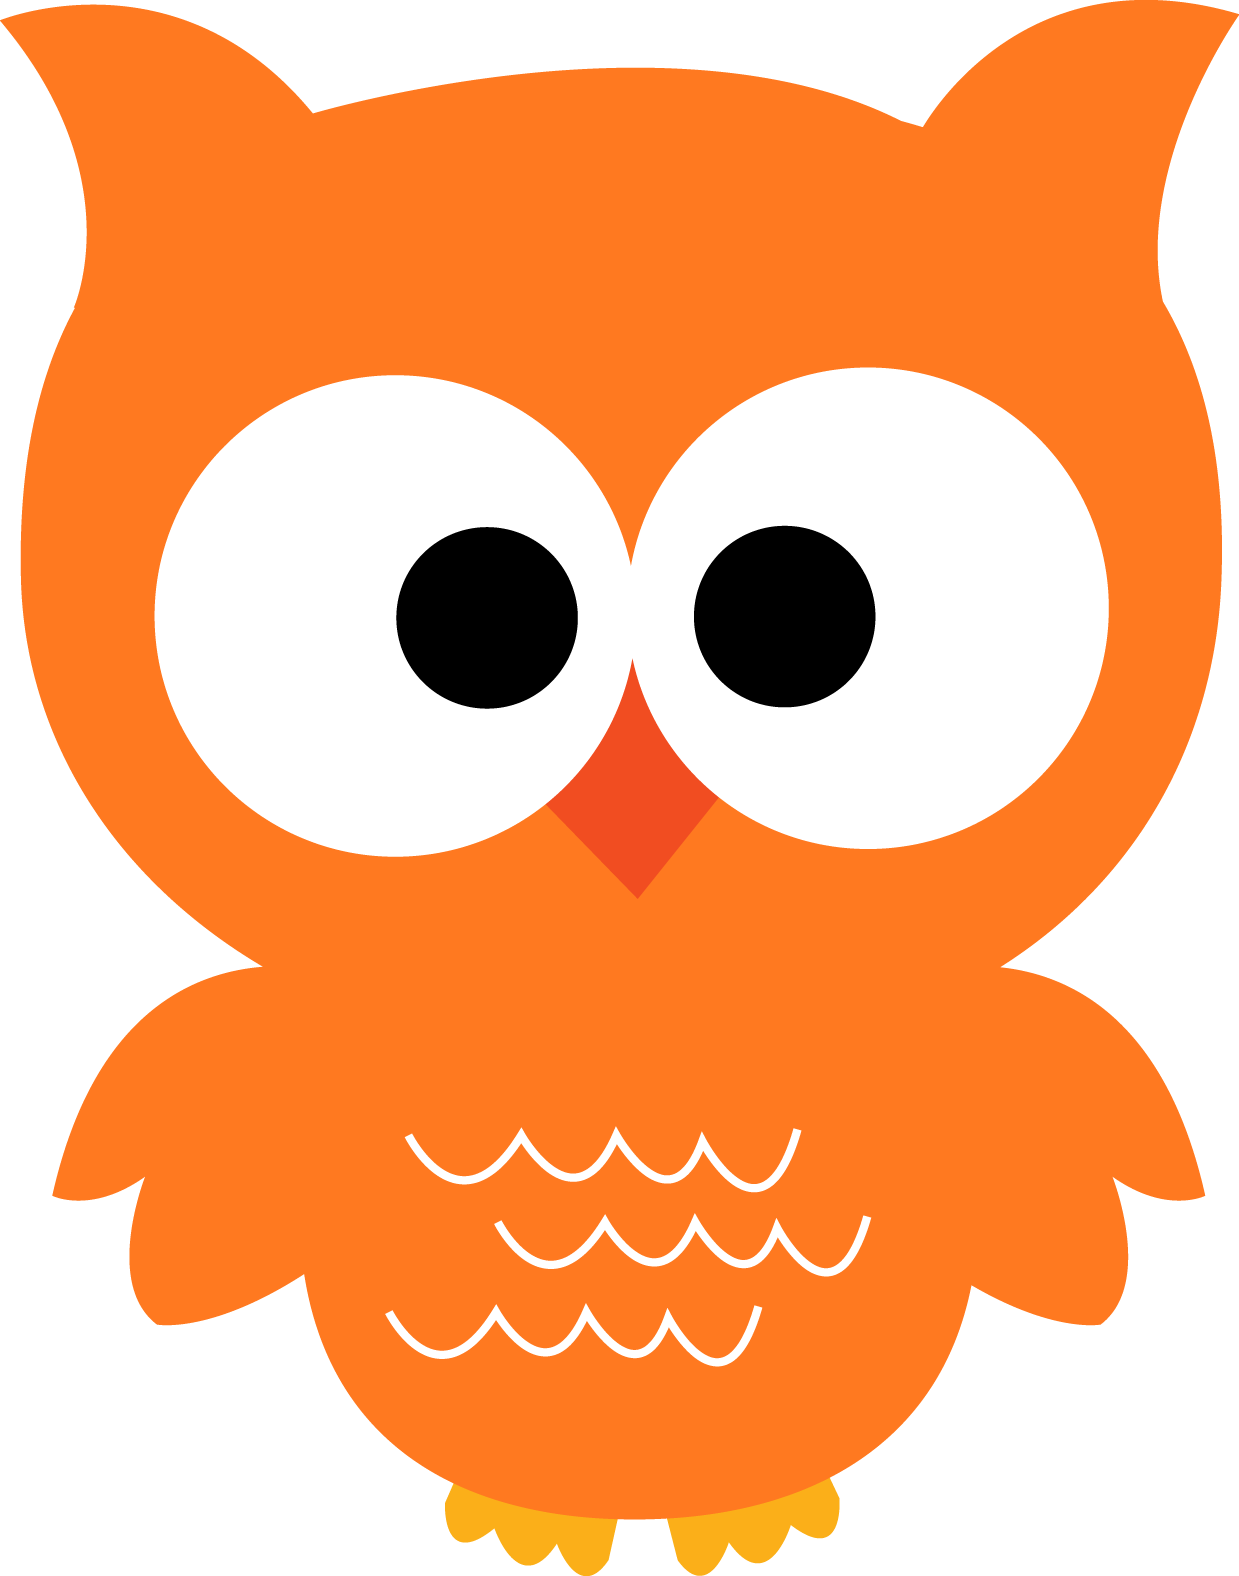 Owls in a tree clipart graphic stock Giggle and Print: 20 ADORABLE Owl Printables! Ohh These are so cute ... graphic stock